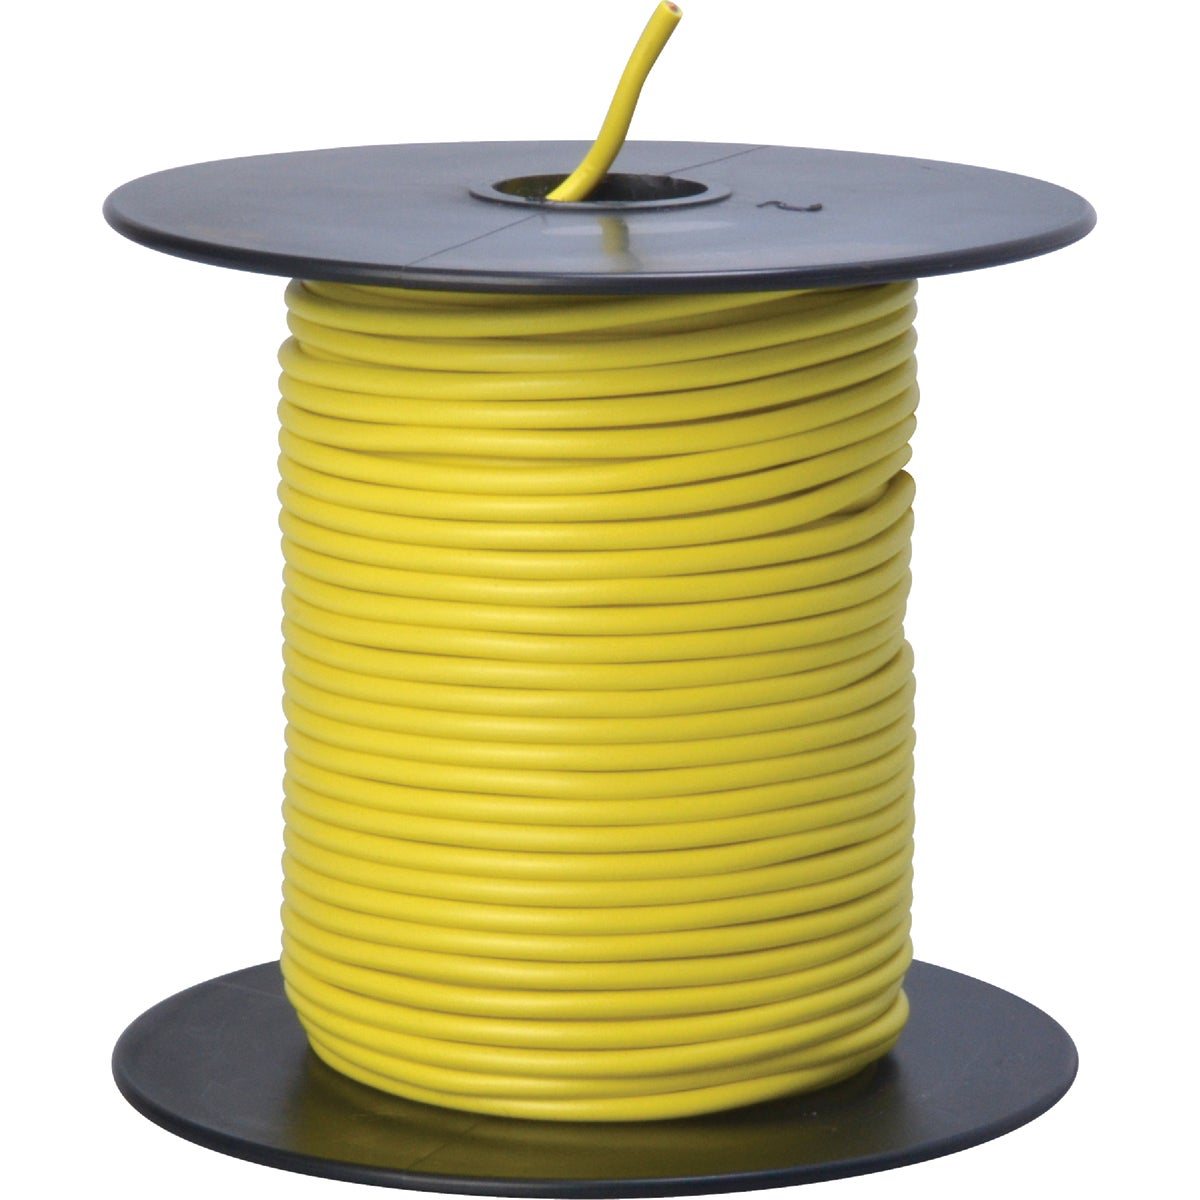 100' 18GA YEL AUTO WIRE - 18-100-14 by Woods Wire Coleman